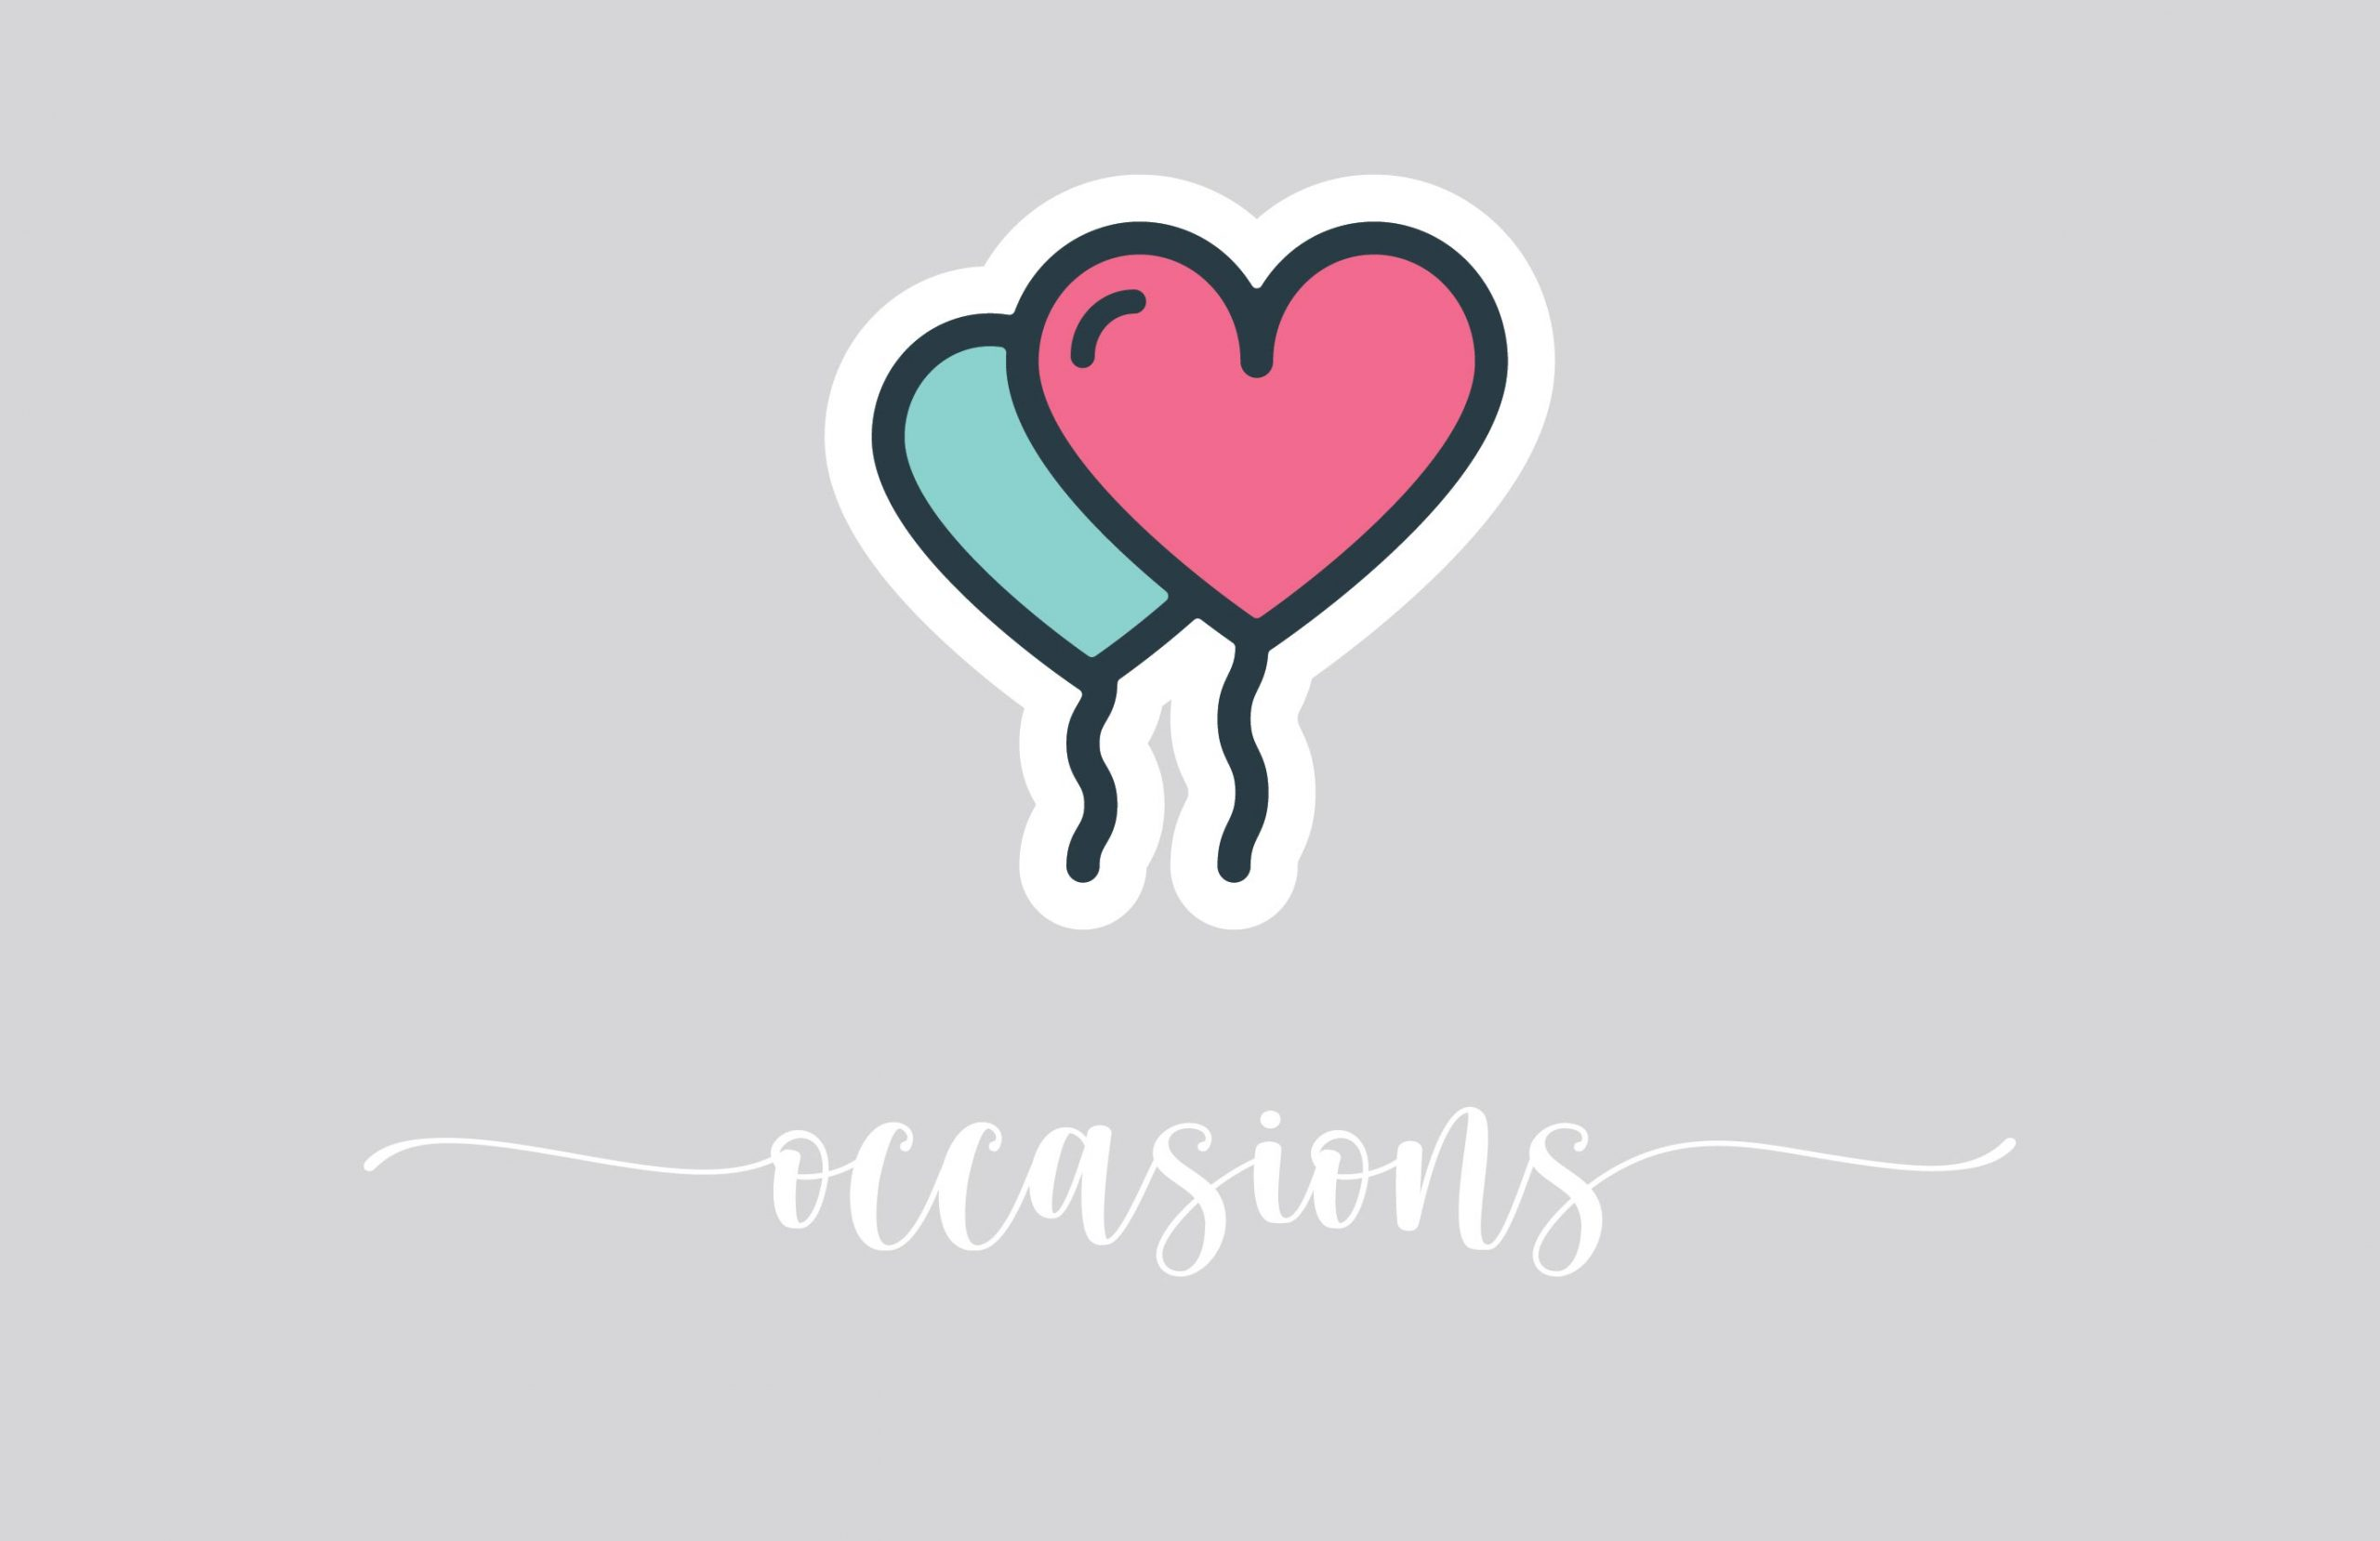 Occasions homepage